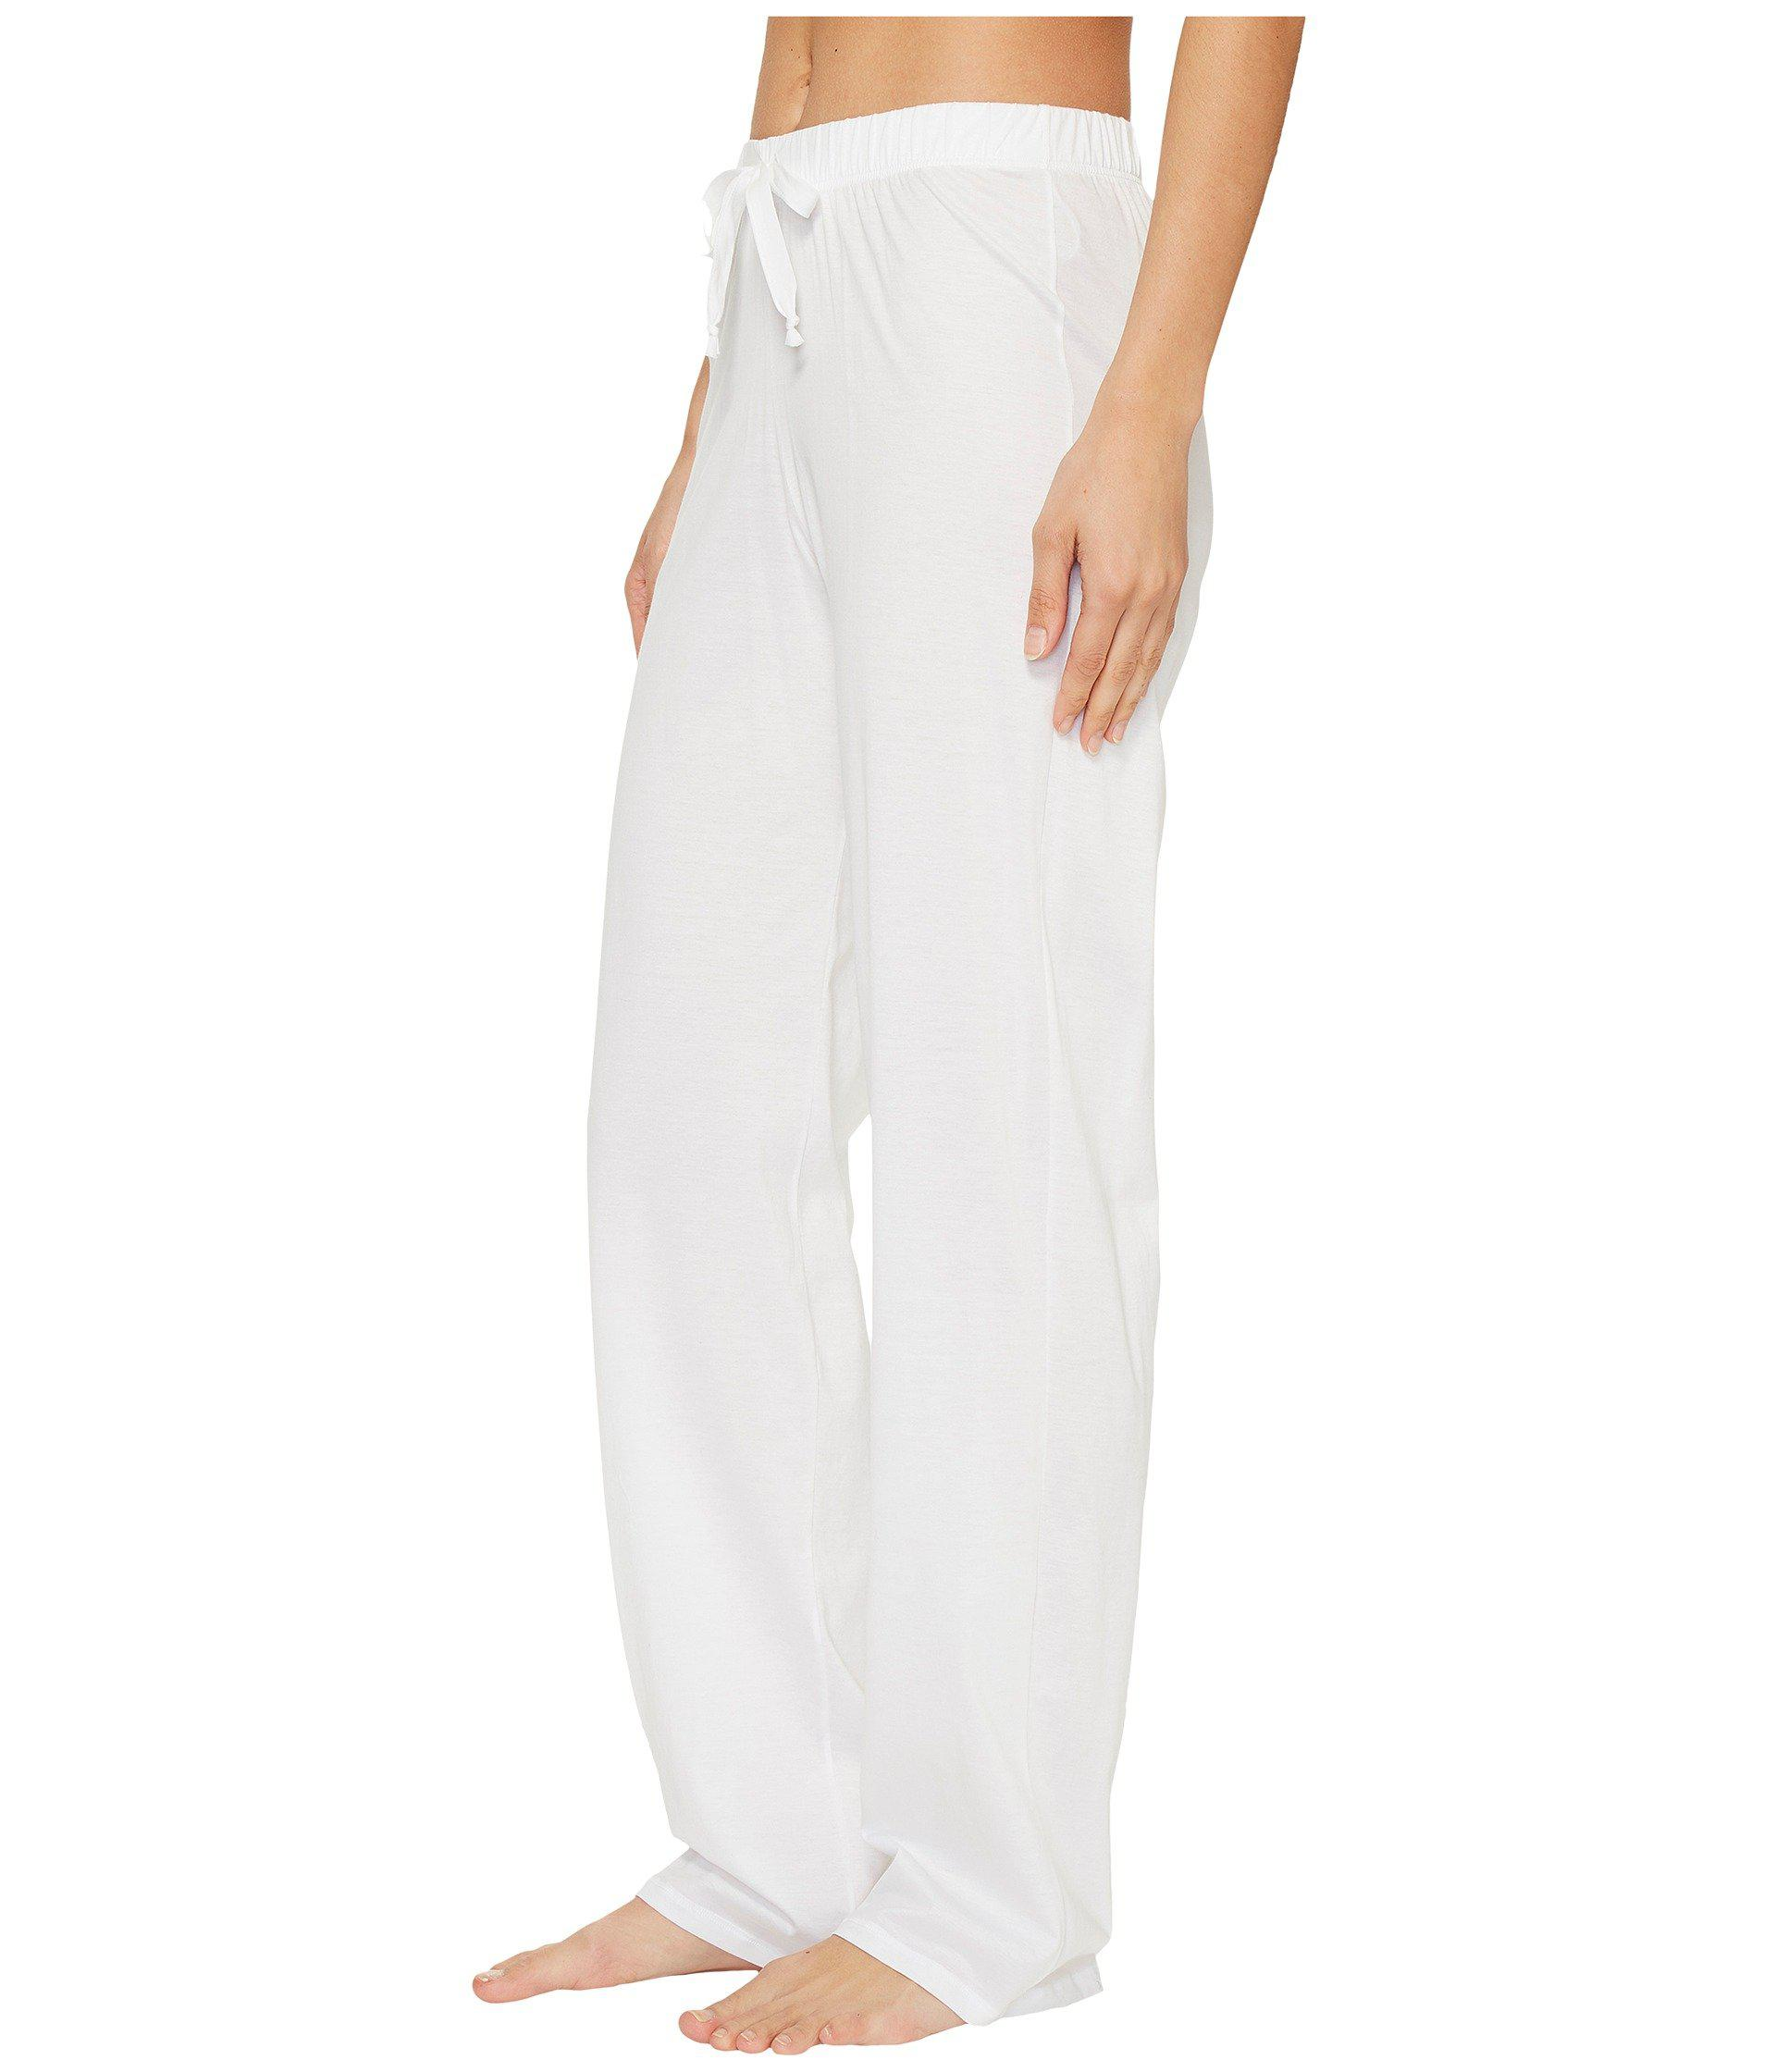 Lyst - Hanro Cotton Deluxe Drawstring Long Pants (black) Women s Pajama in  White 6708aea3a